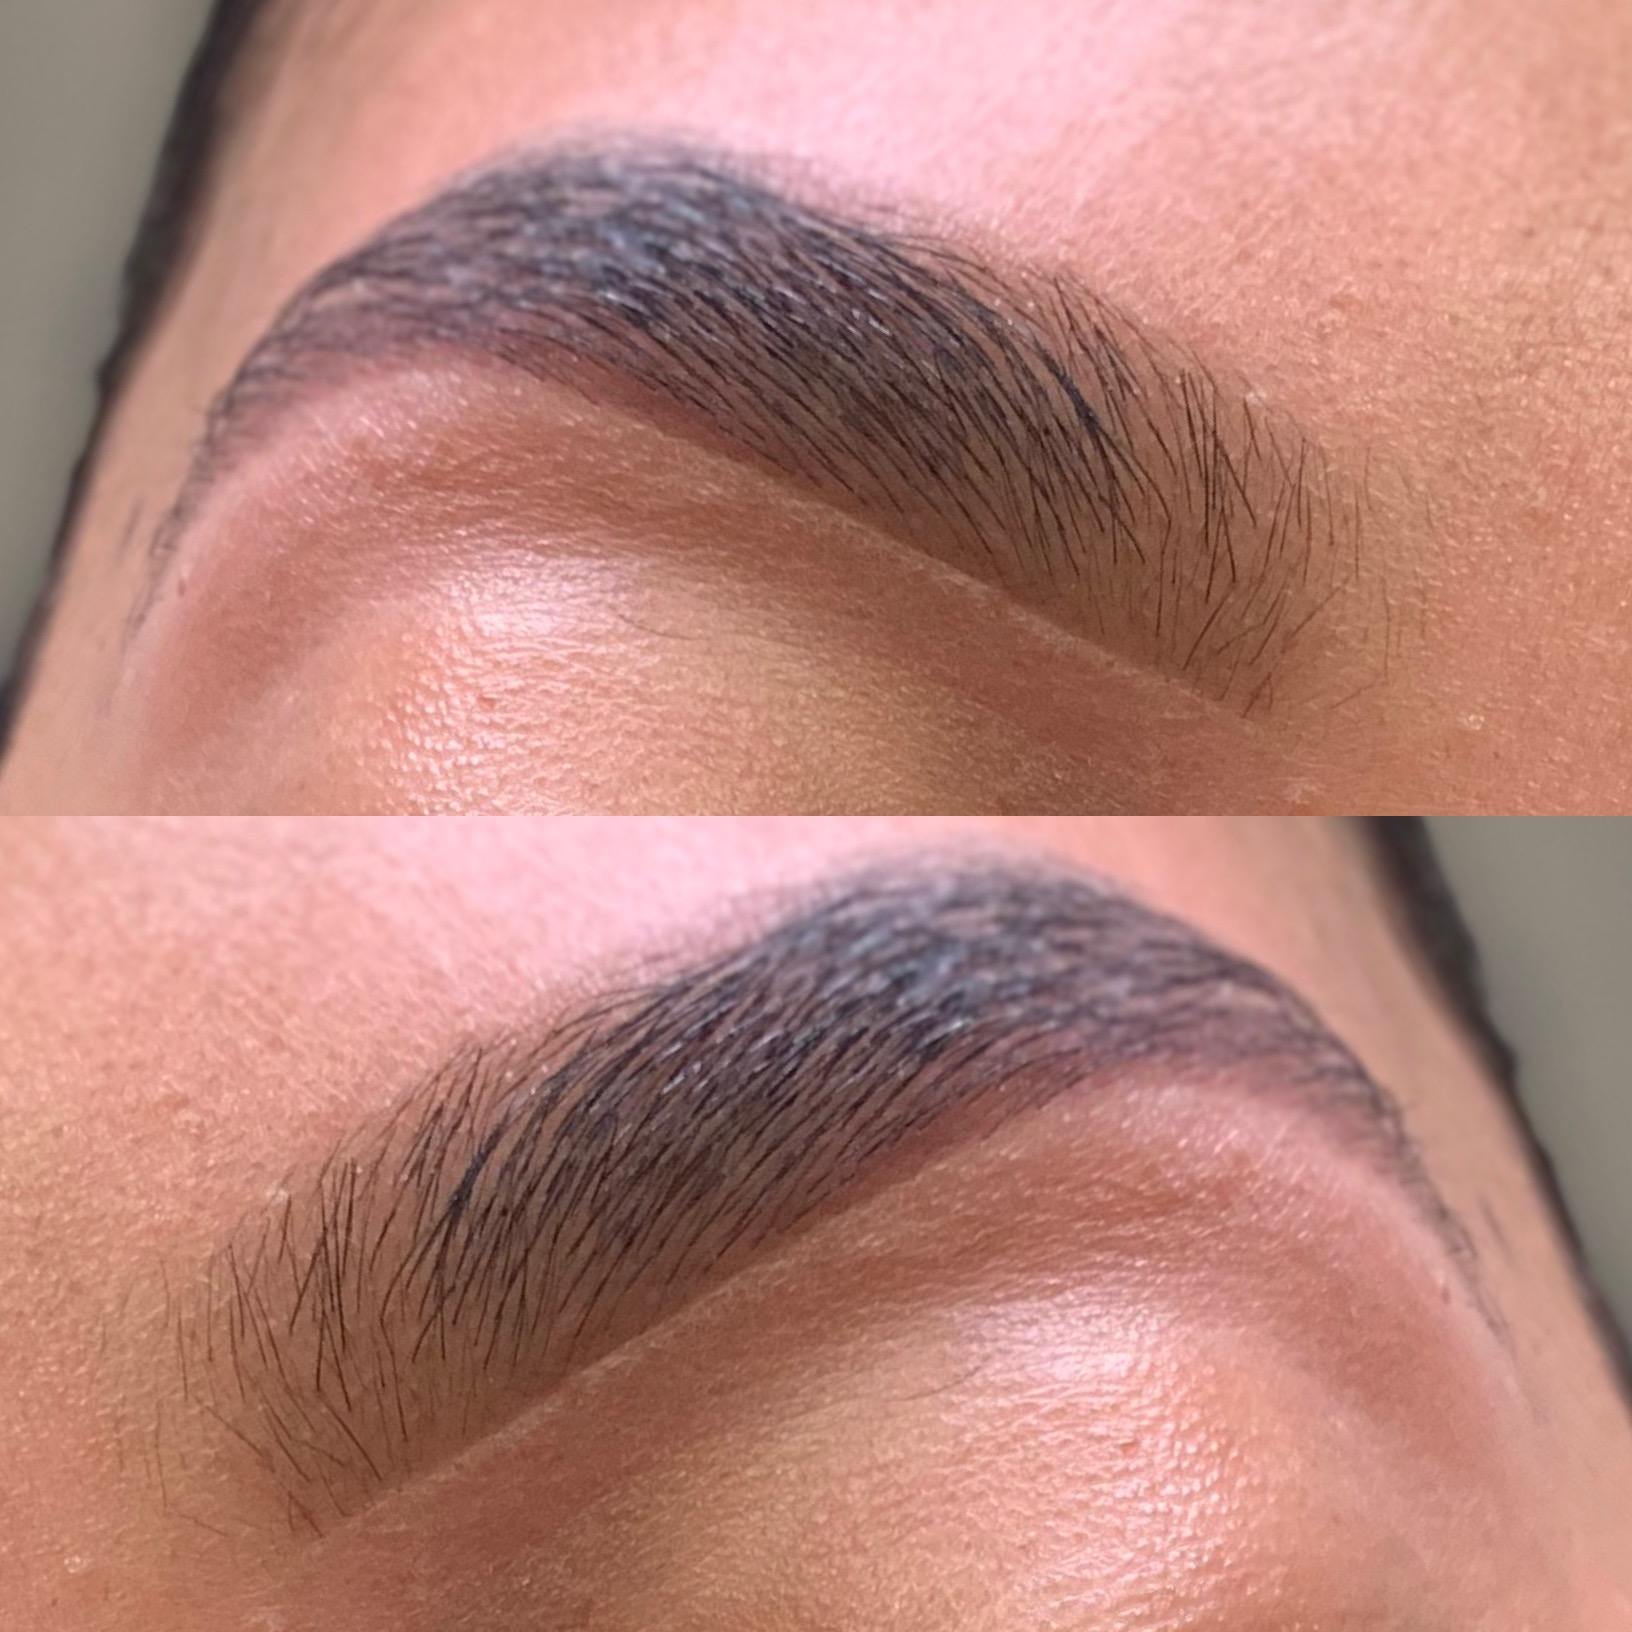 sky beauté eyebrow waxing shape columbia maryland dmv location.jpg